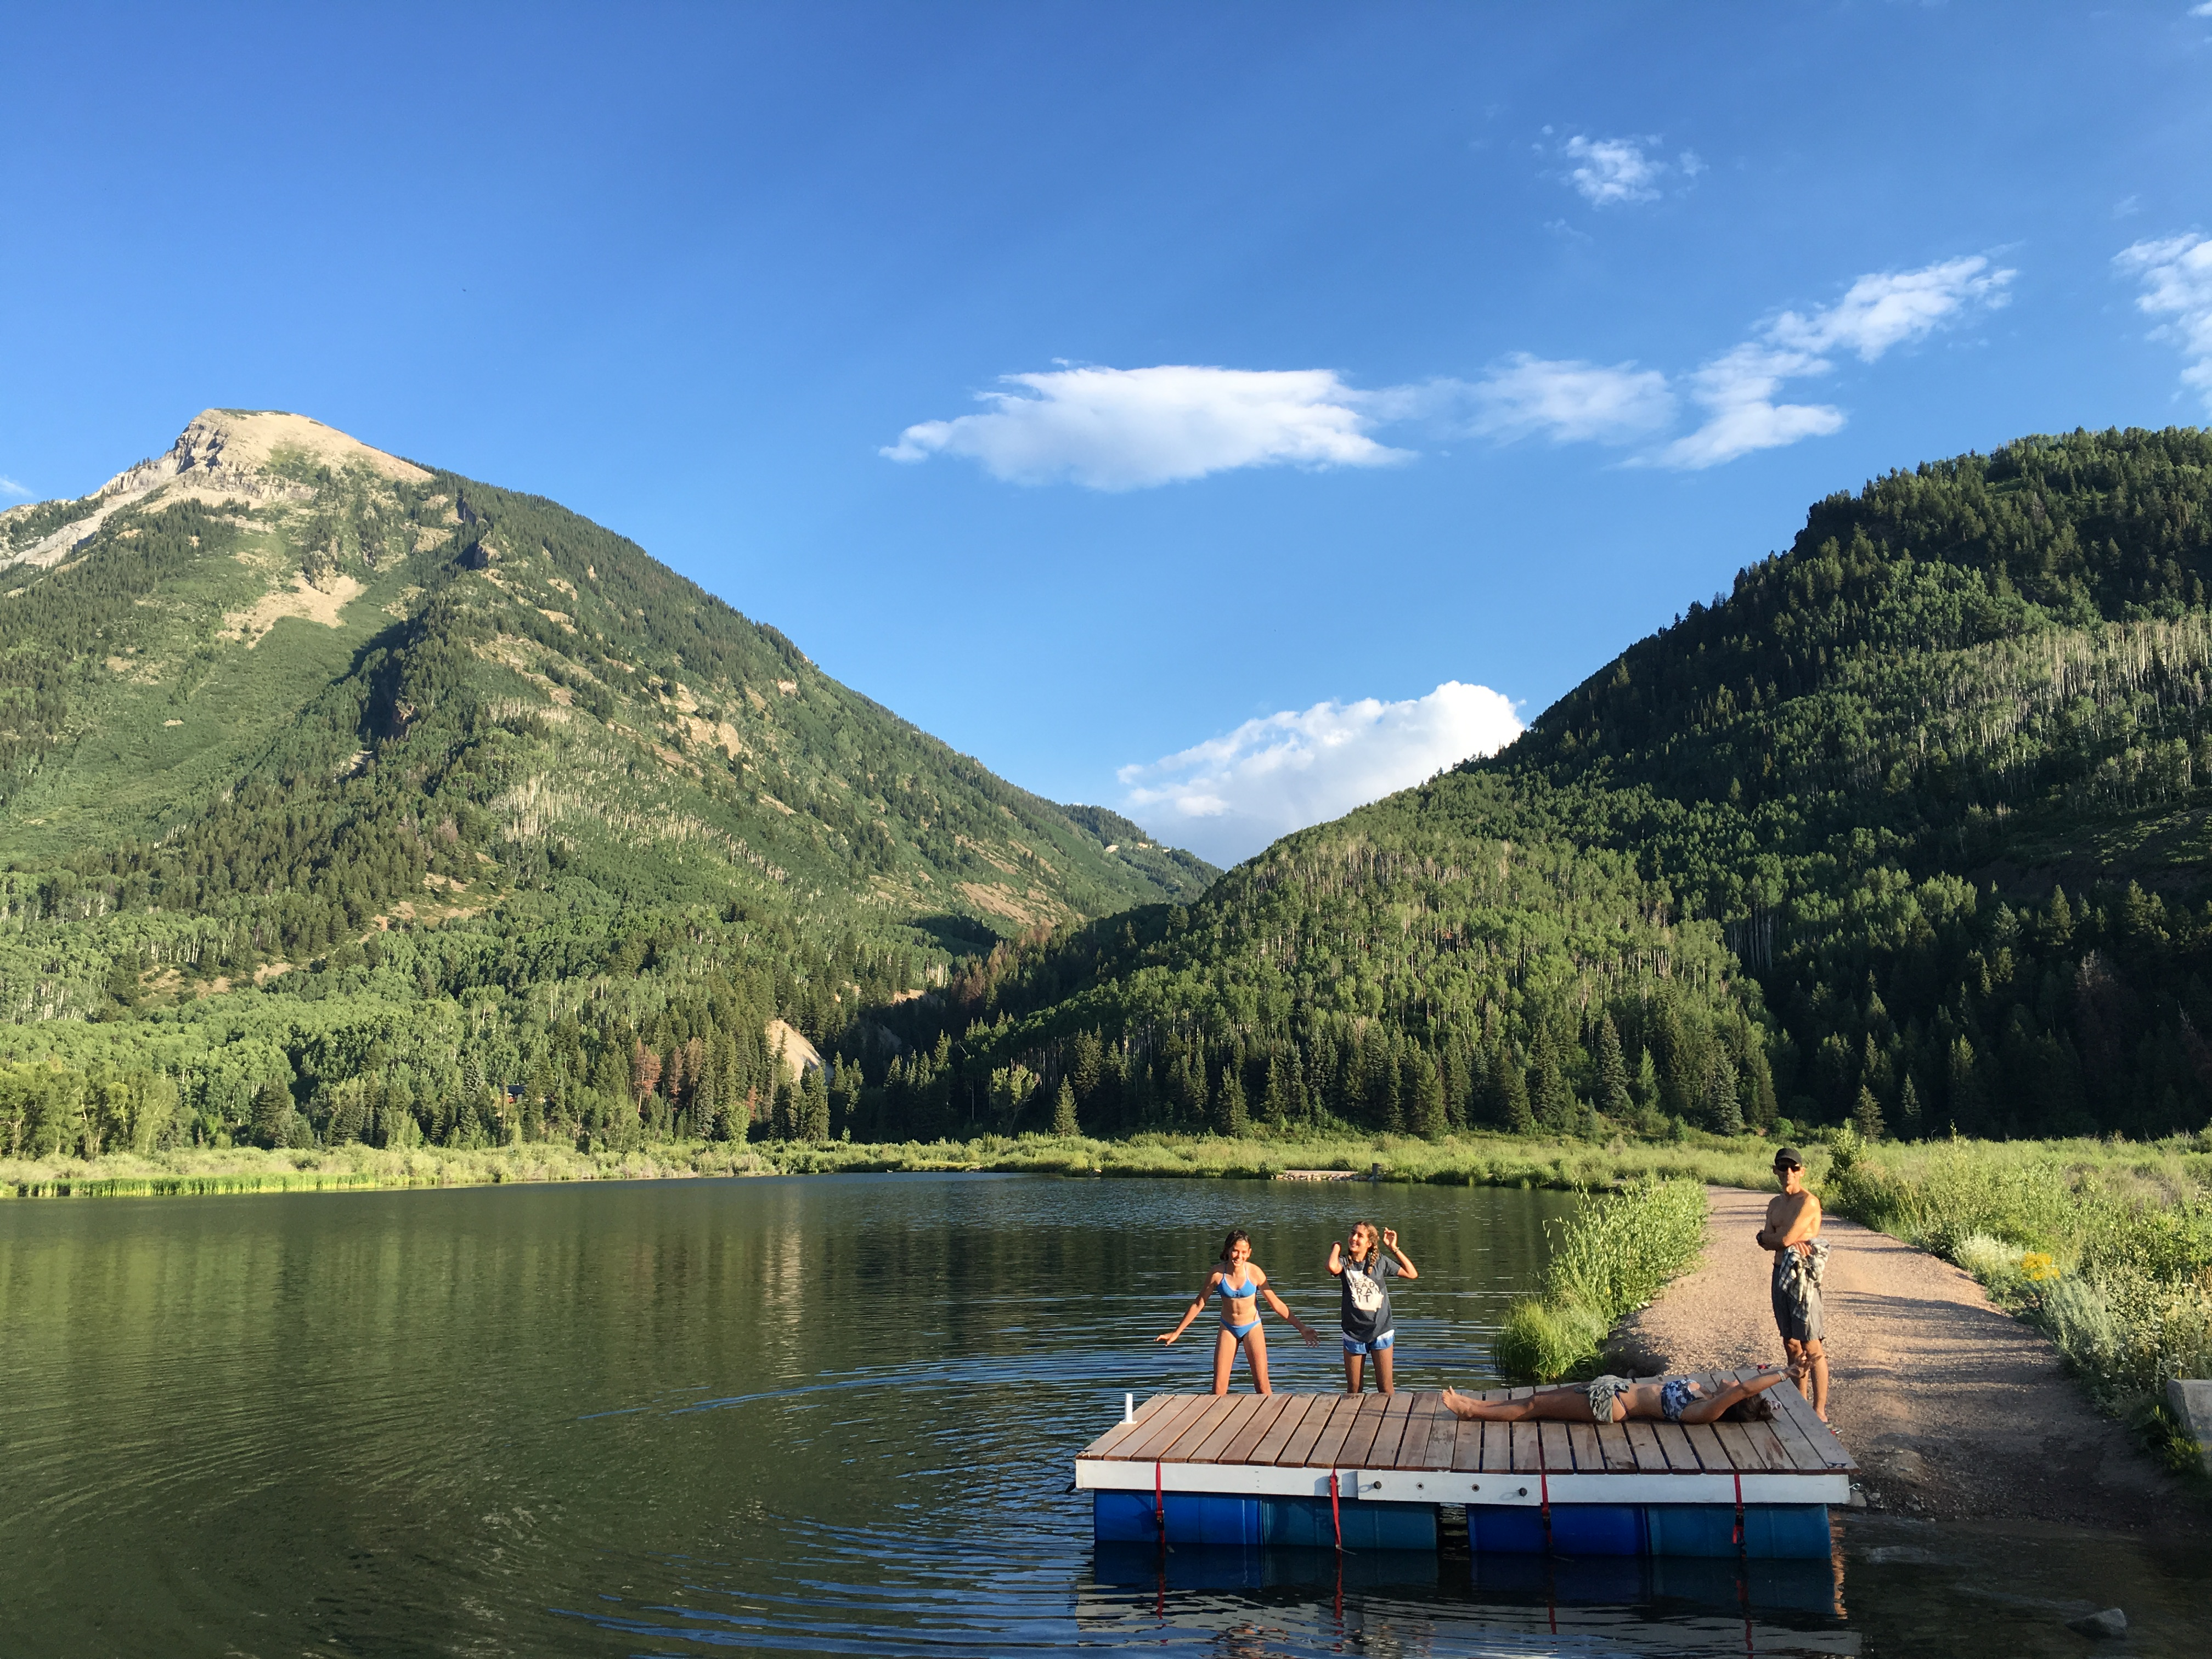 Swimming and Paddleboarding in Beaver Lake, Marble, Colorado